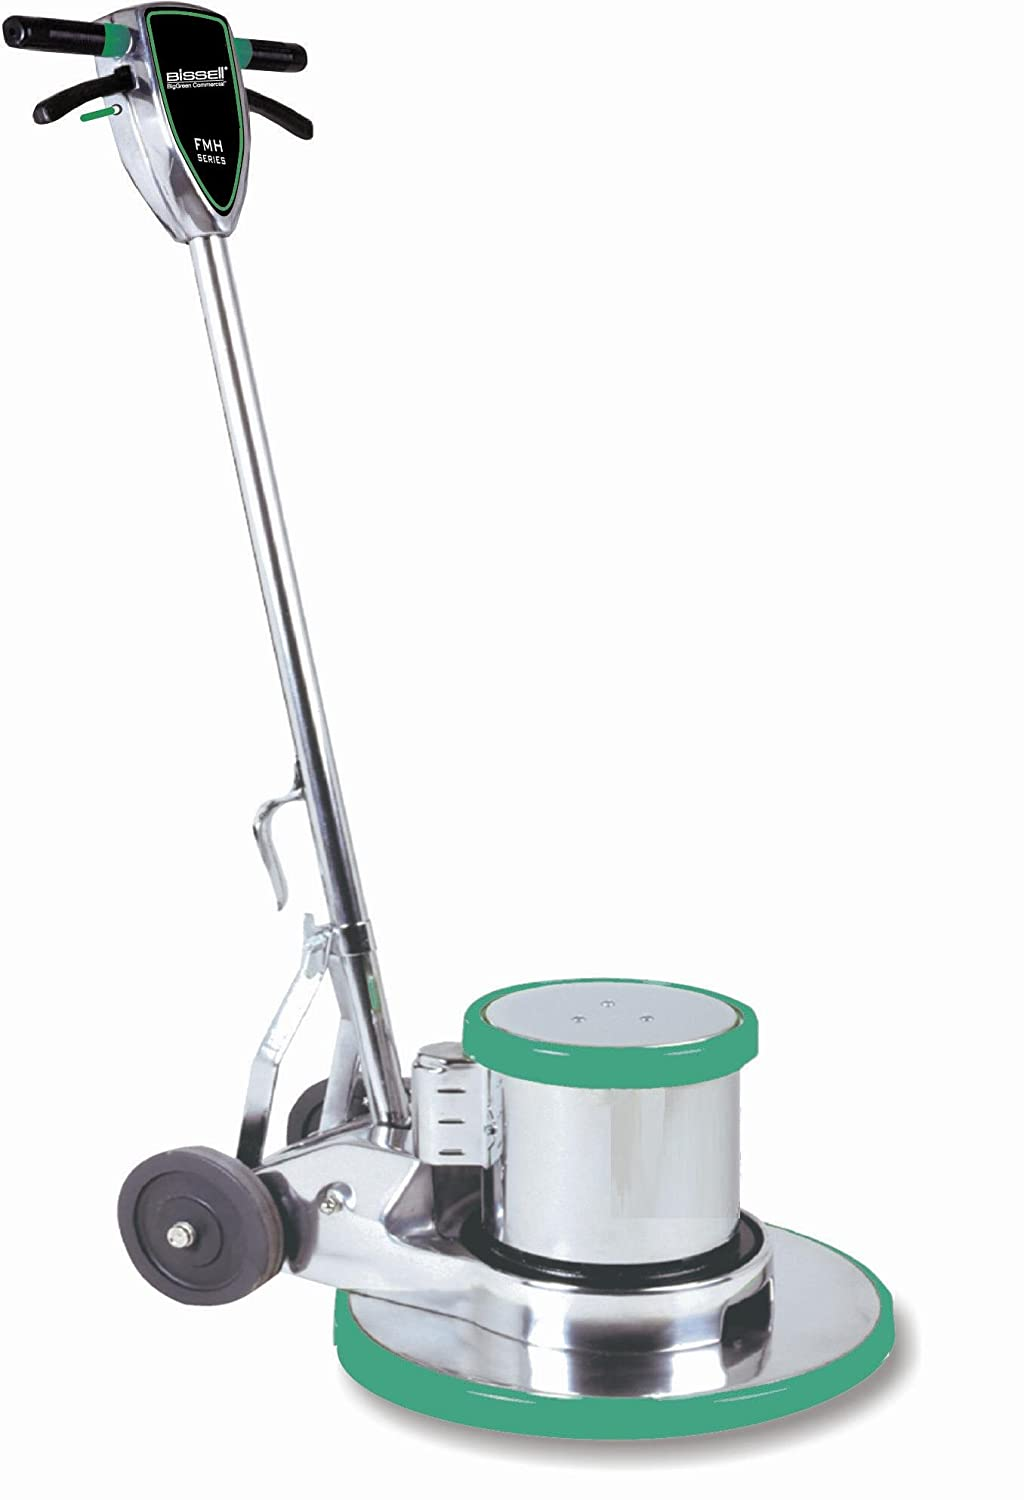 Tile floor scrubber machine images home flooring design amazon bissell heavy duty floor scrubber polisher machine amazon bissell heavy duty floor scrubber polisher machine doublecrazyfo Image collections